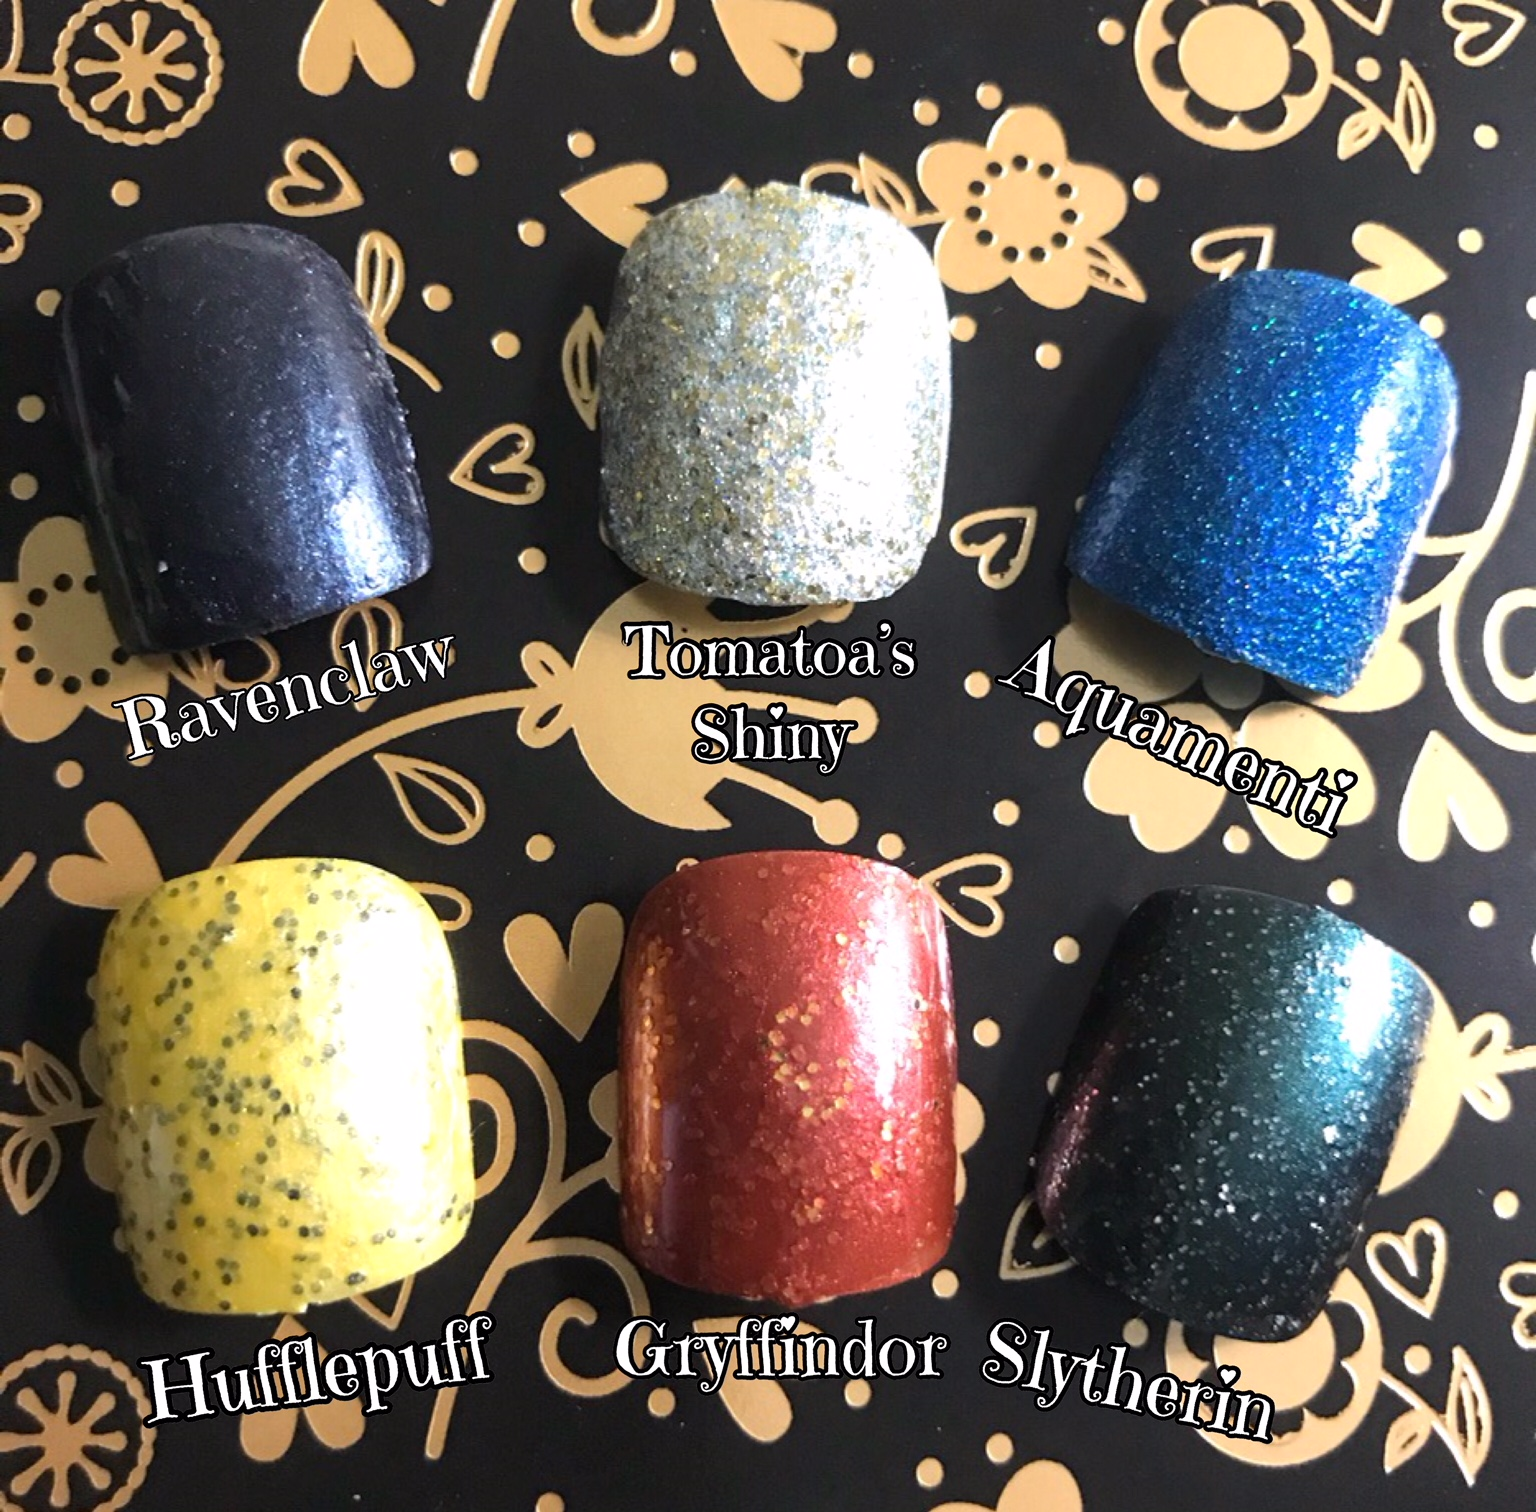 Sparkling Reviews: Nerdy Nails Review and Giveaway @NerdyNailStudio